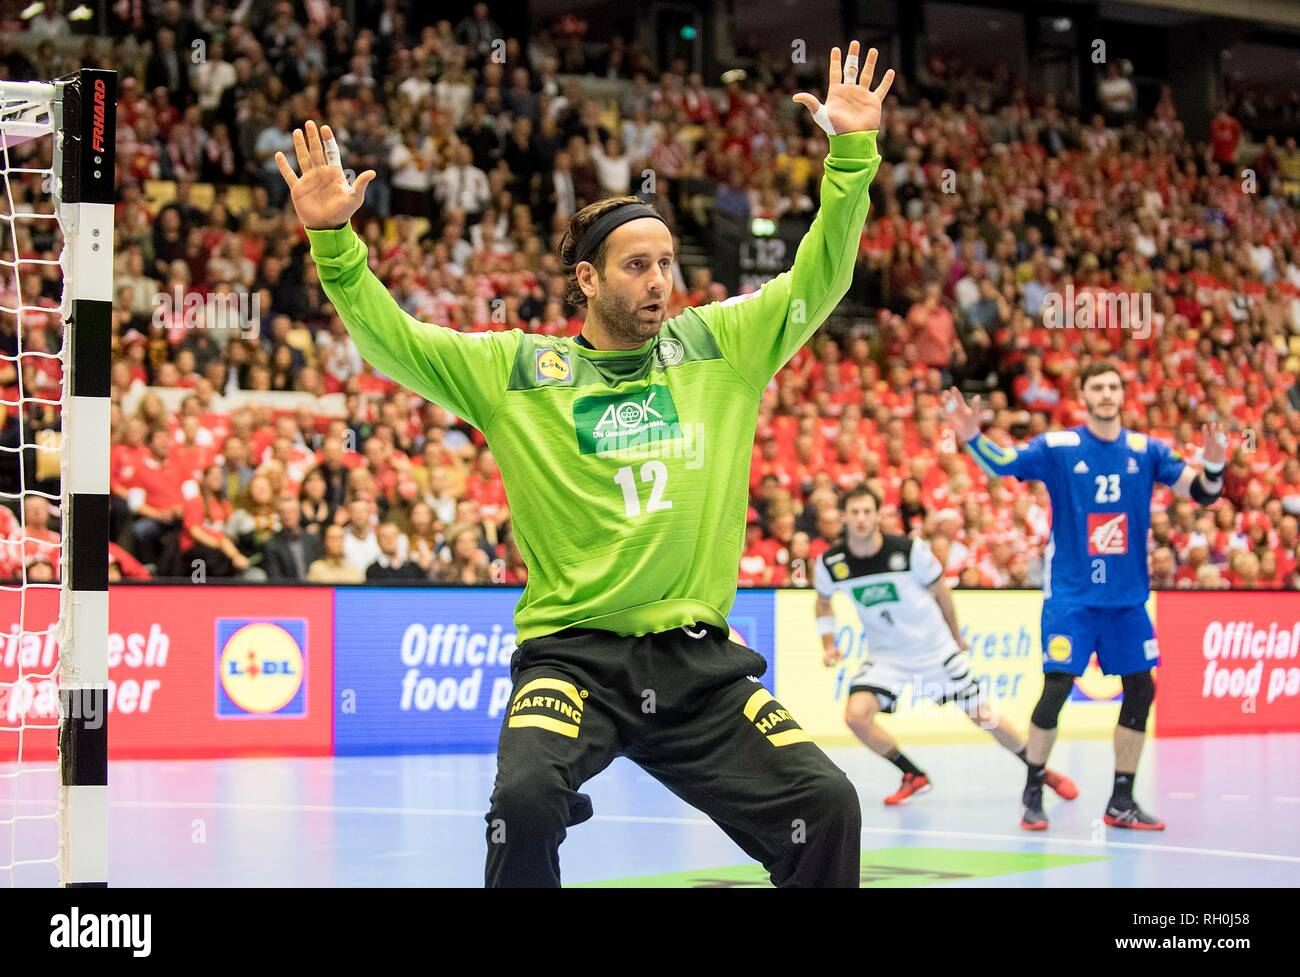 goalkeeper Silvio HEINEVETTER (GER) action. Third place, Germany (GER) - France (FRA) 25:26, 27/01/2019 in Herning/Denmark Handball World Cup 2019, from 10.01. - 27.01.2019 in Germany/Denmark. | usage worldwide Stock Photo